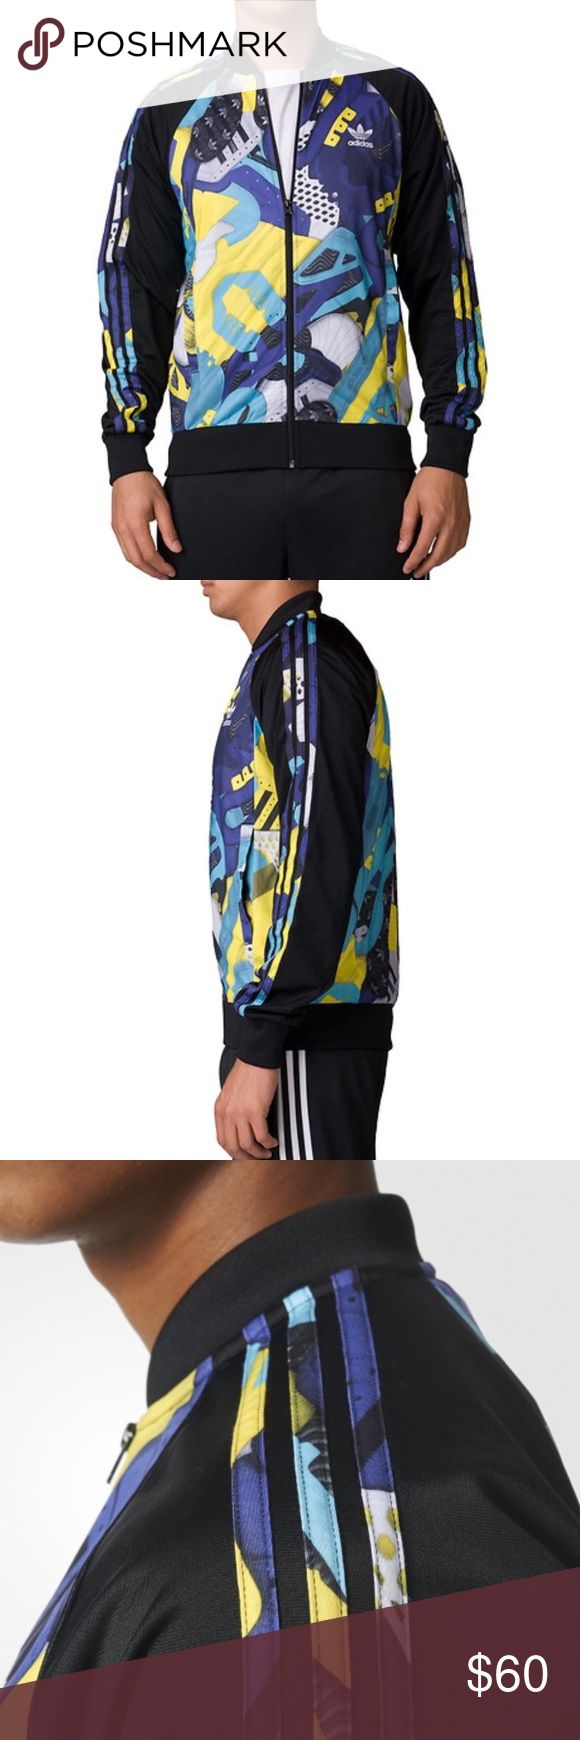 Adidas Montage Three Stripes Black Track Jacket Brand new with tags, Men's size Small. This Adidas Montage Three Stripes Black Track Jacket is such an eyecatcher! A classic style that becomes a statement piece with its montage print all over! Love the blue, yellow, purple and black color combination. Full zipper closure. Has the iconic 3 stripes along both sleeves. Adidas trefoil logo on the chest. Ribbed cuffs and hem. Has 2 front pockets. Made of 100% Polyester. adidas Jackets & Coats